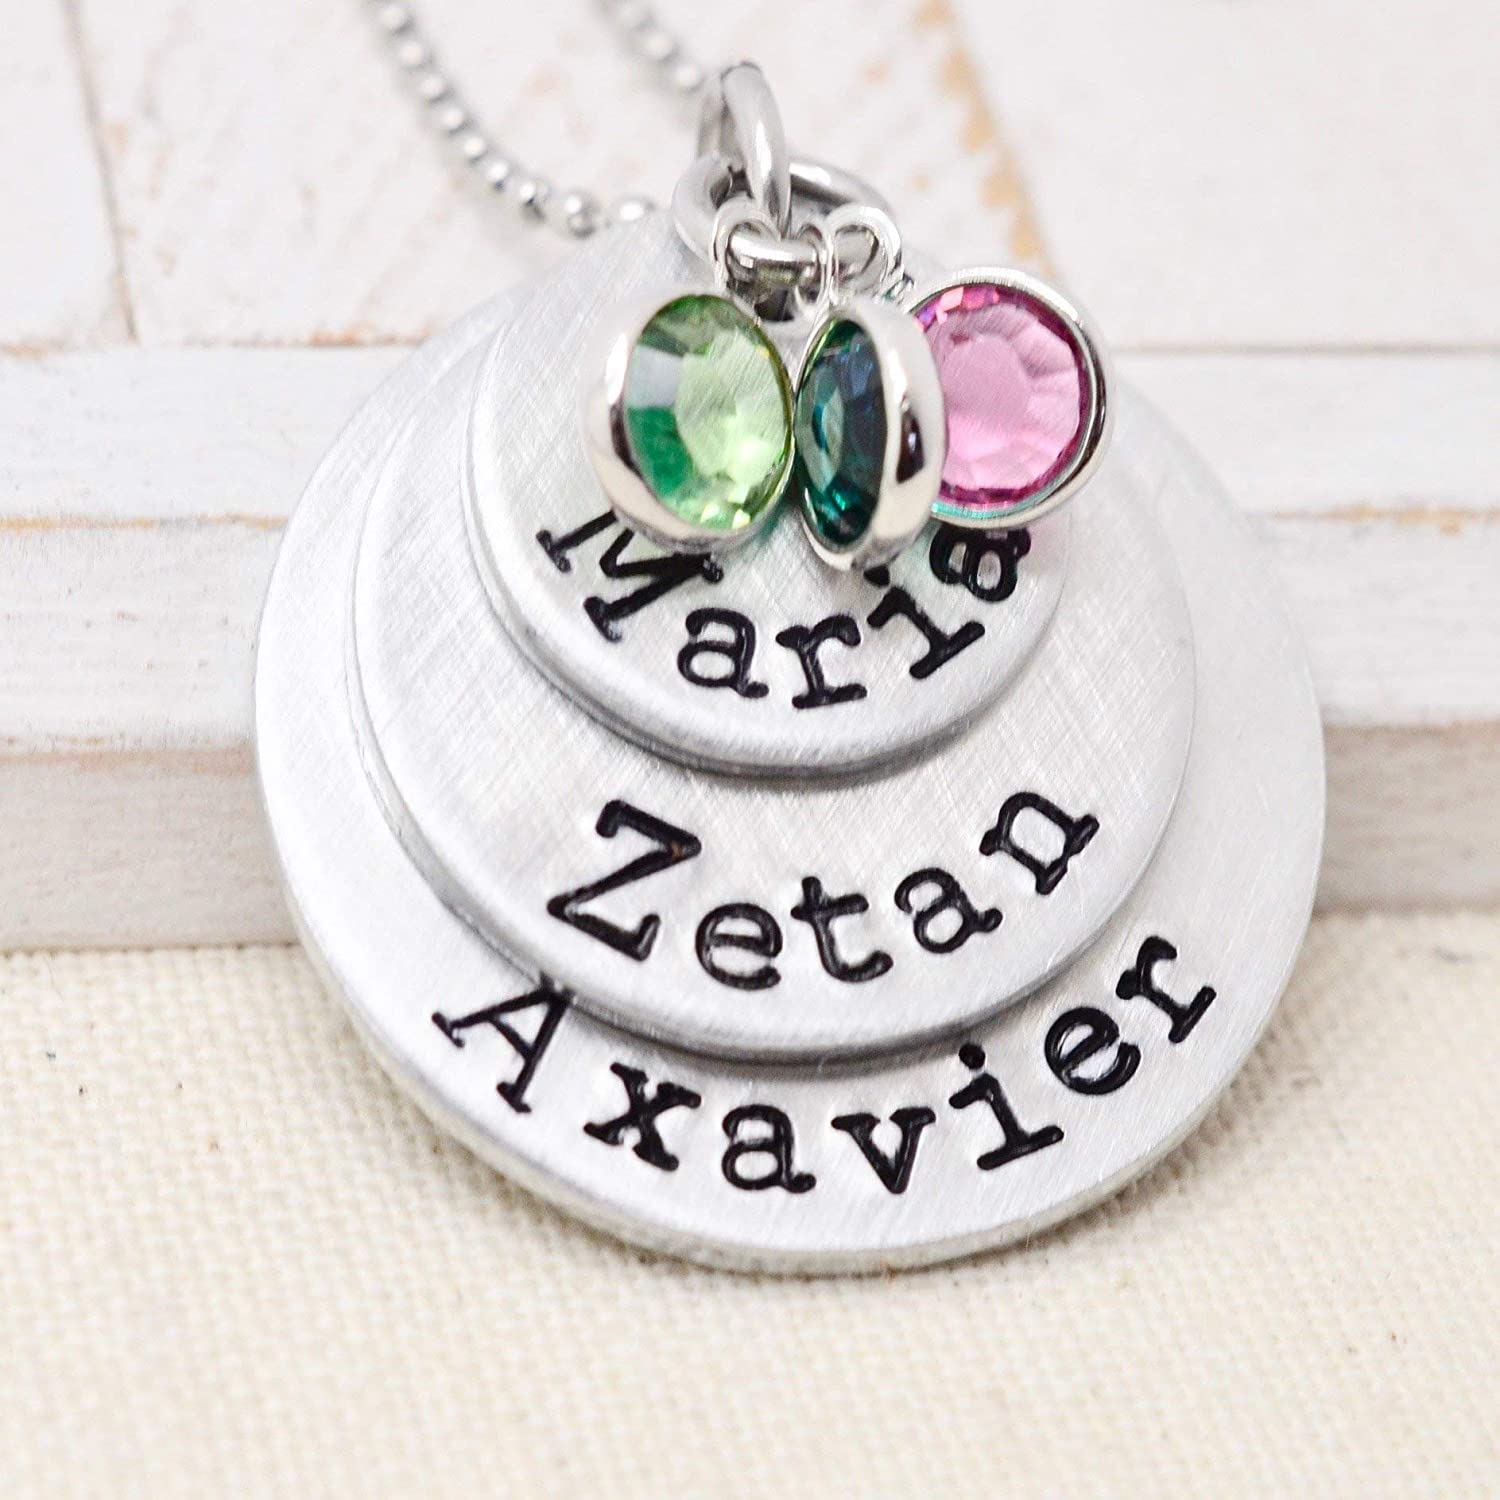 029797b3a870e Personalized Birthstone Necklace for Mom, Mothers Custom Jewelry, Mommy  Name Necklace, Grandma Gift